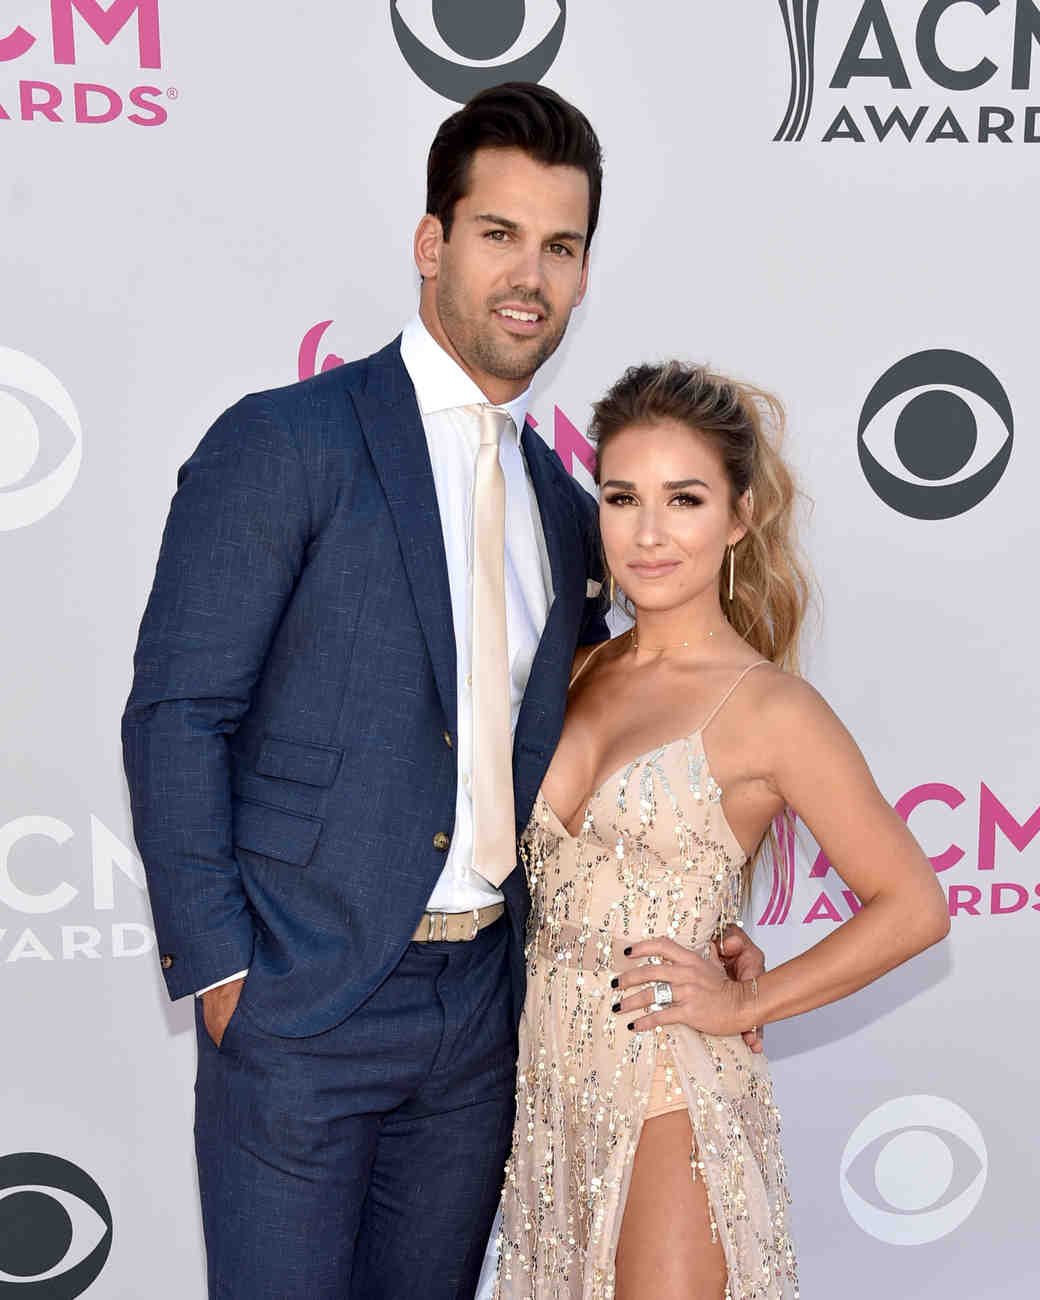 Jessie James Decker and Eric Decker at Academy of Country Music Awards